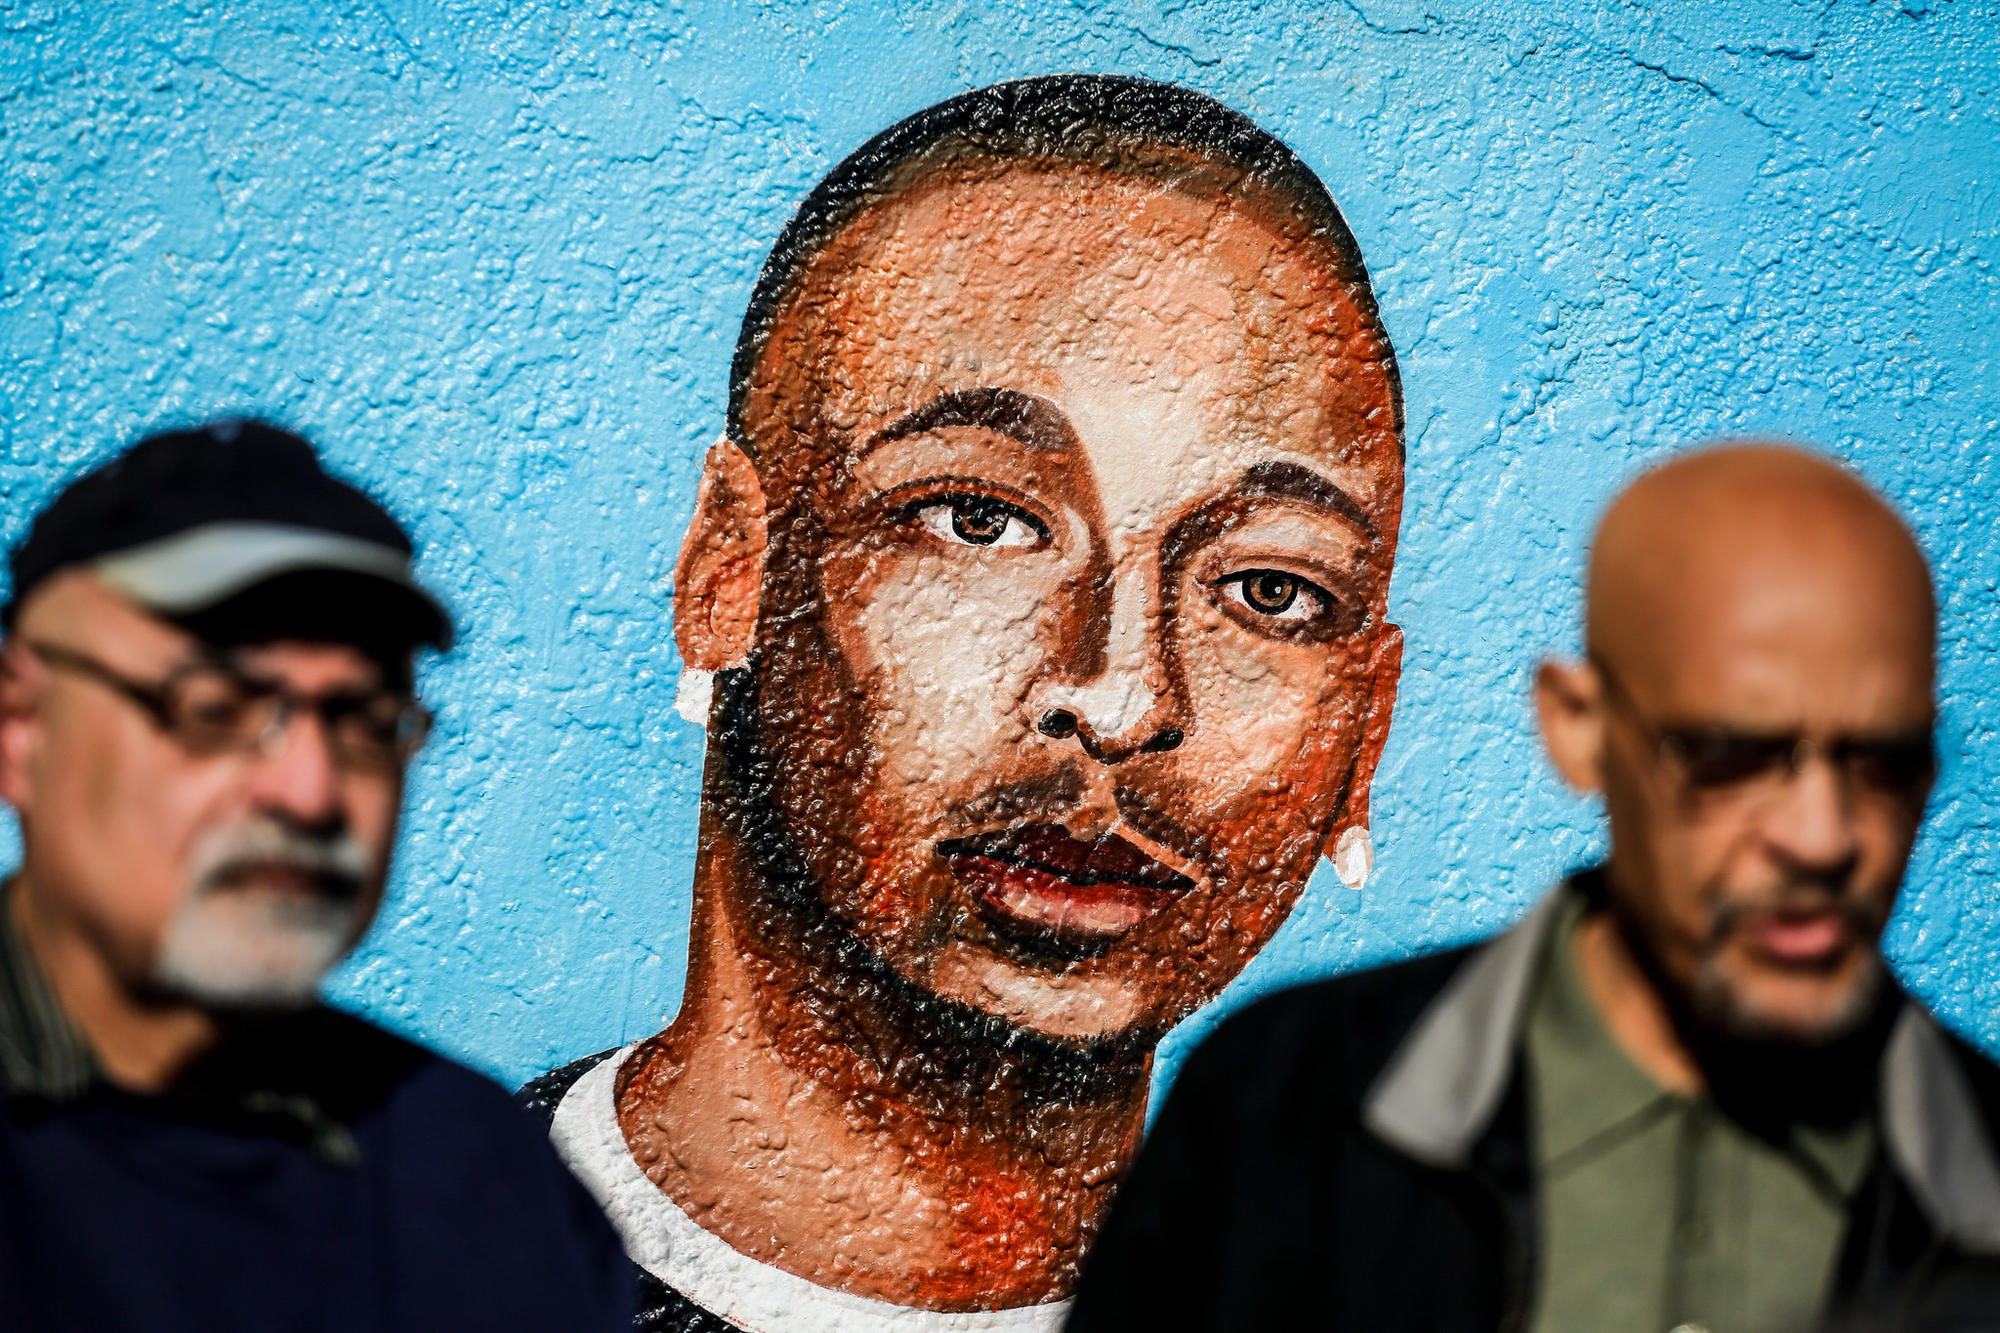 At the corner of 65th Street and Broadway in South Los Angeles, the site of the LAPD's fatal shooting of Ezell Ford is memorialized on a wall.